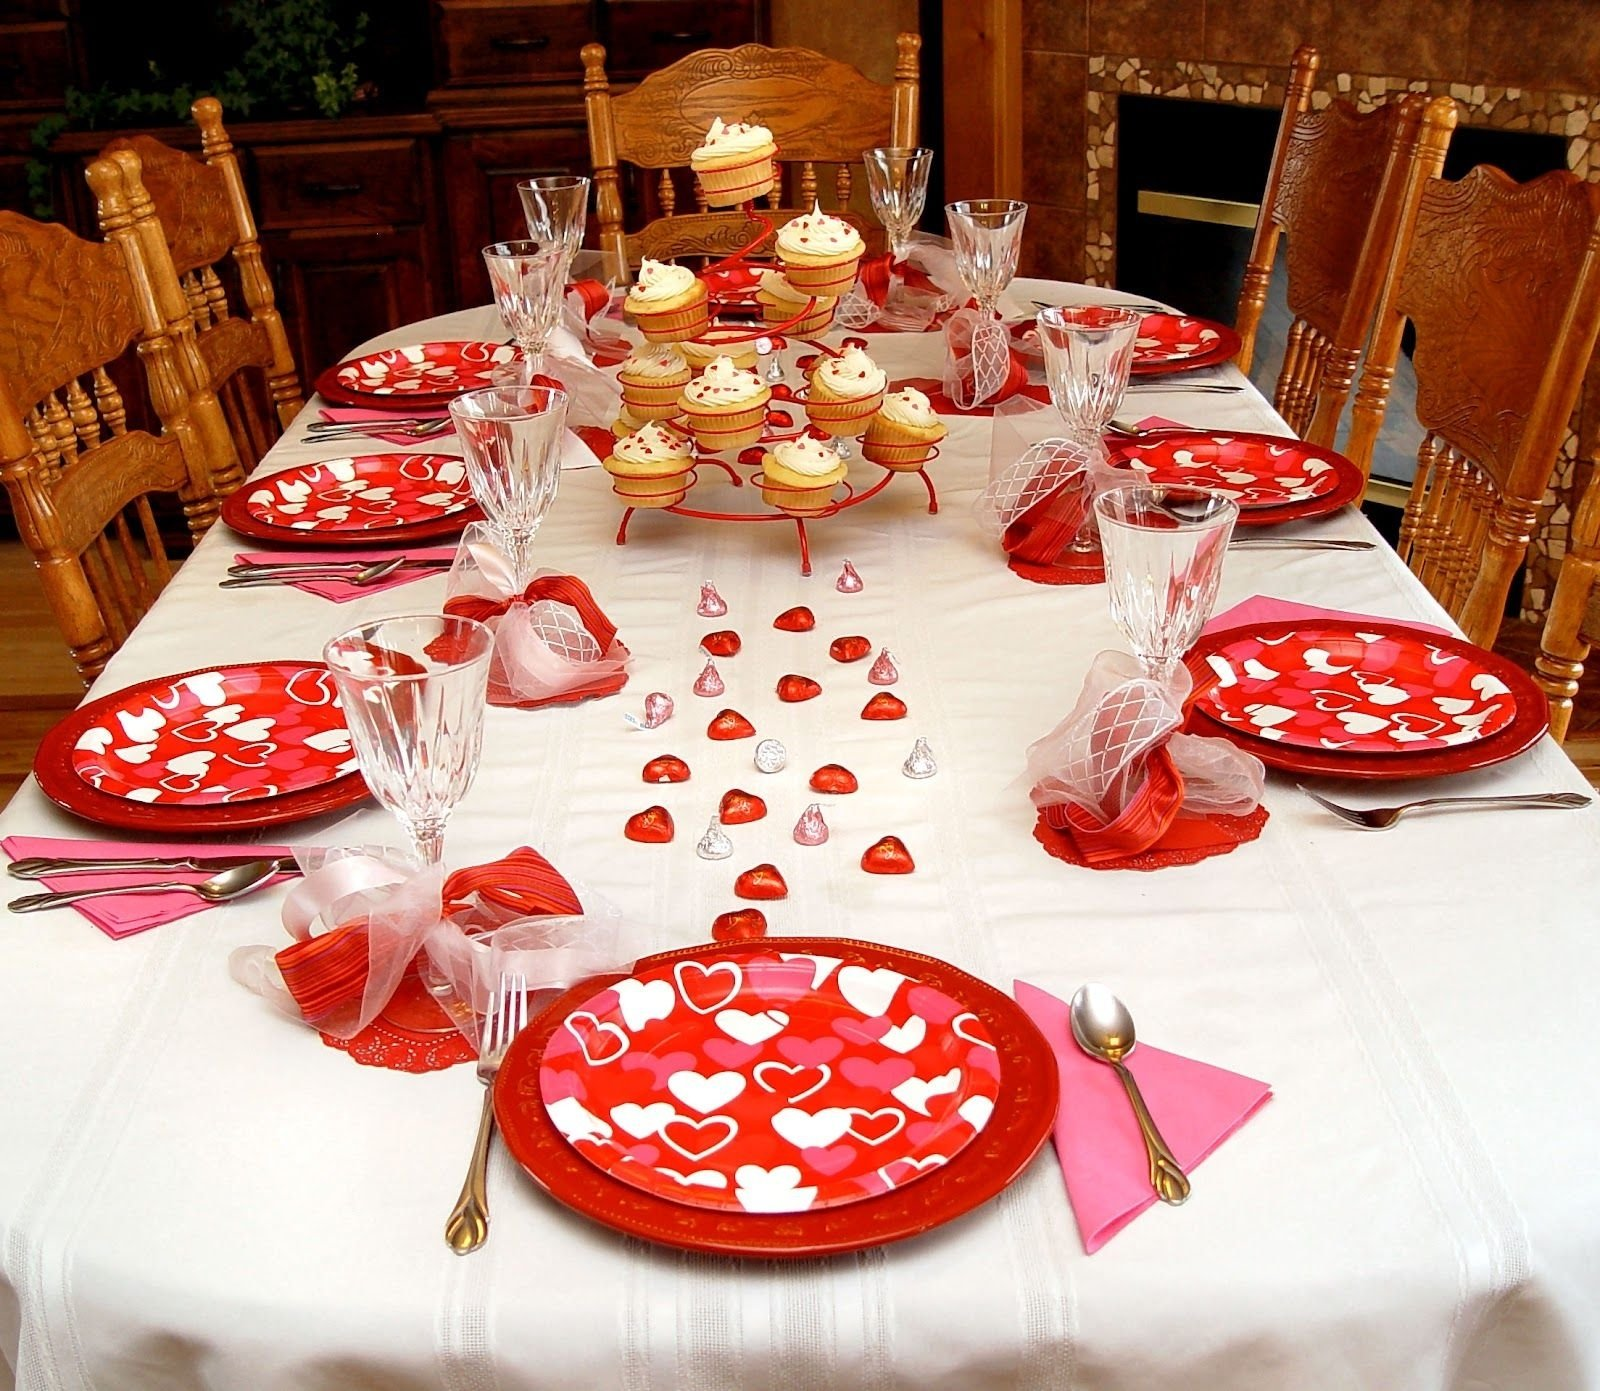 10 Best Valentines Day Ideas For Family family valentines dinner idea and how to make a junk bow family 2020